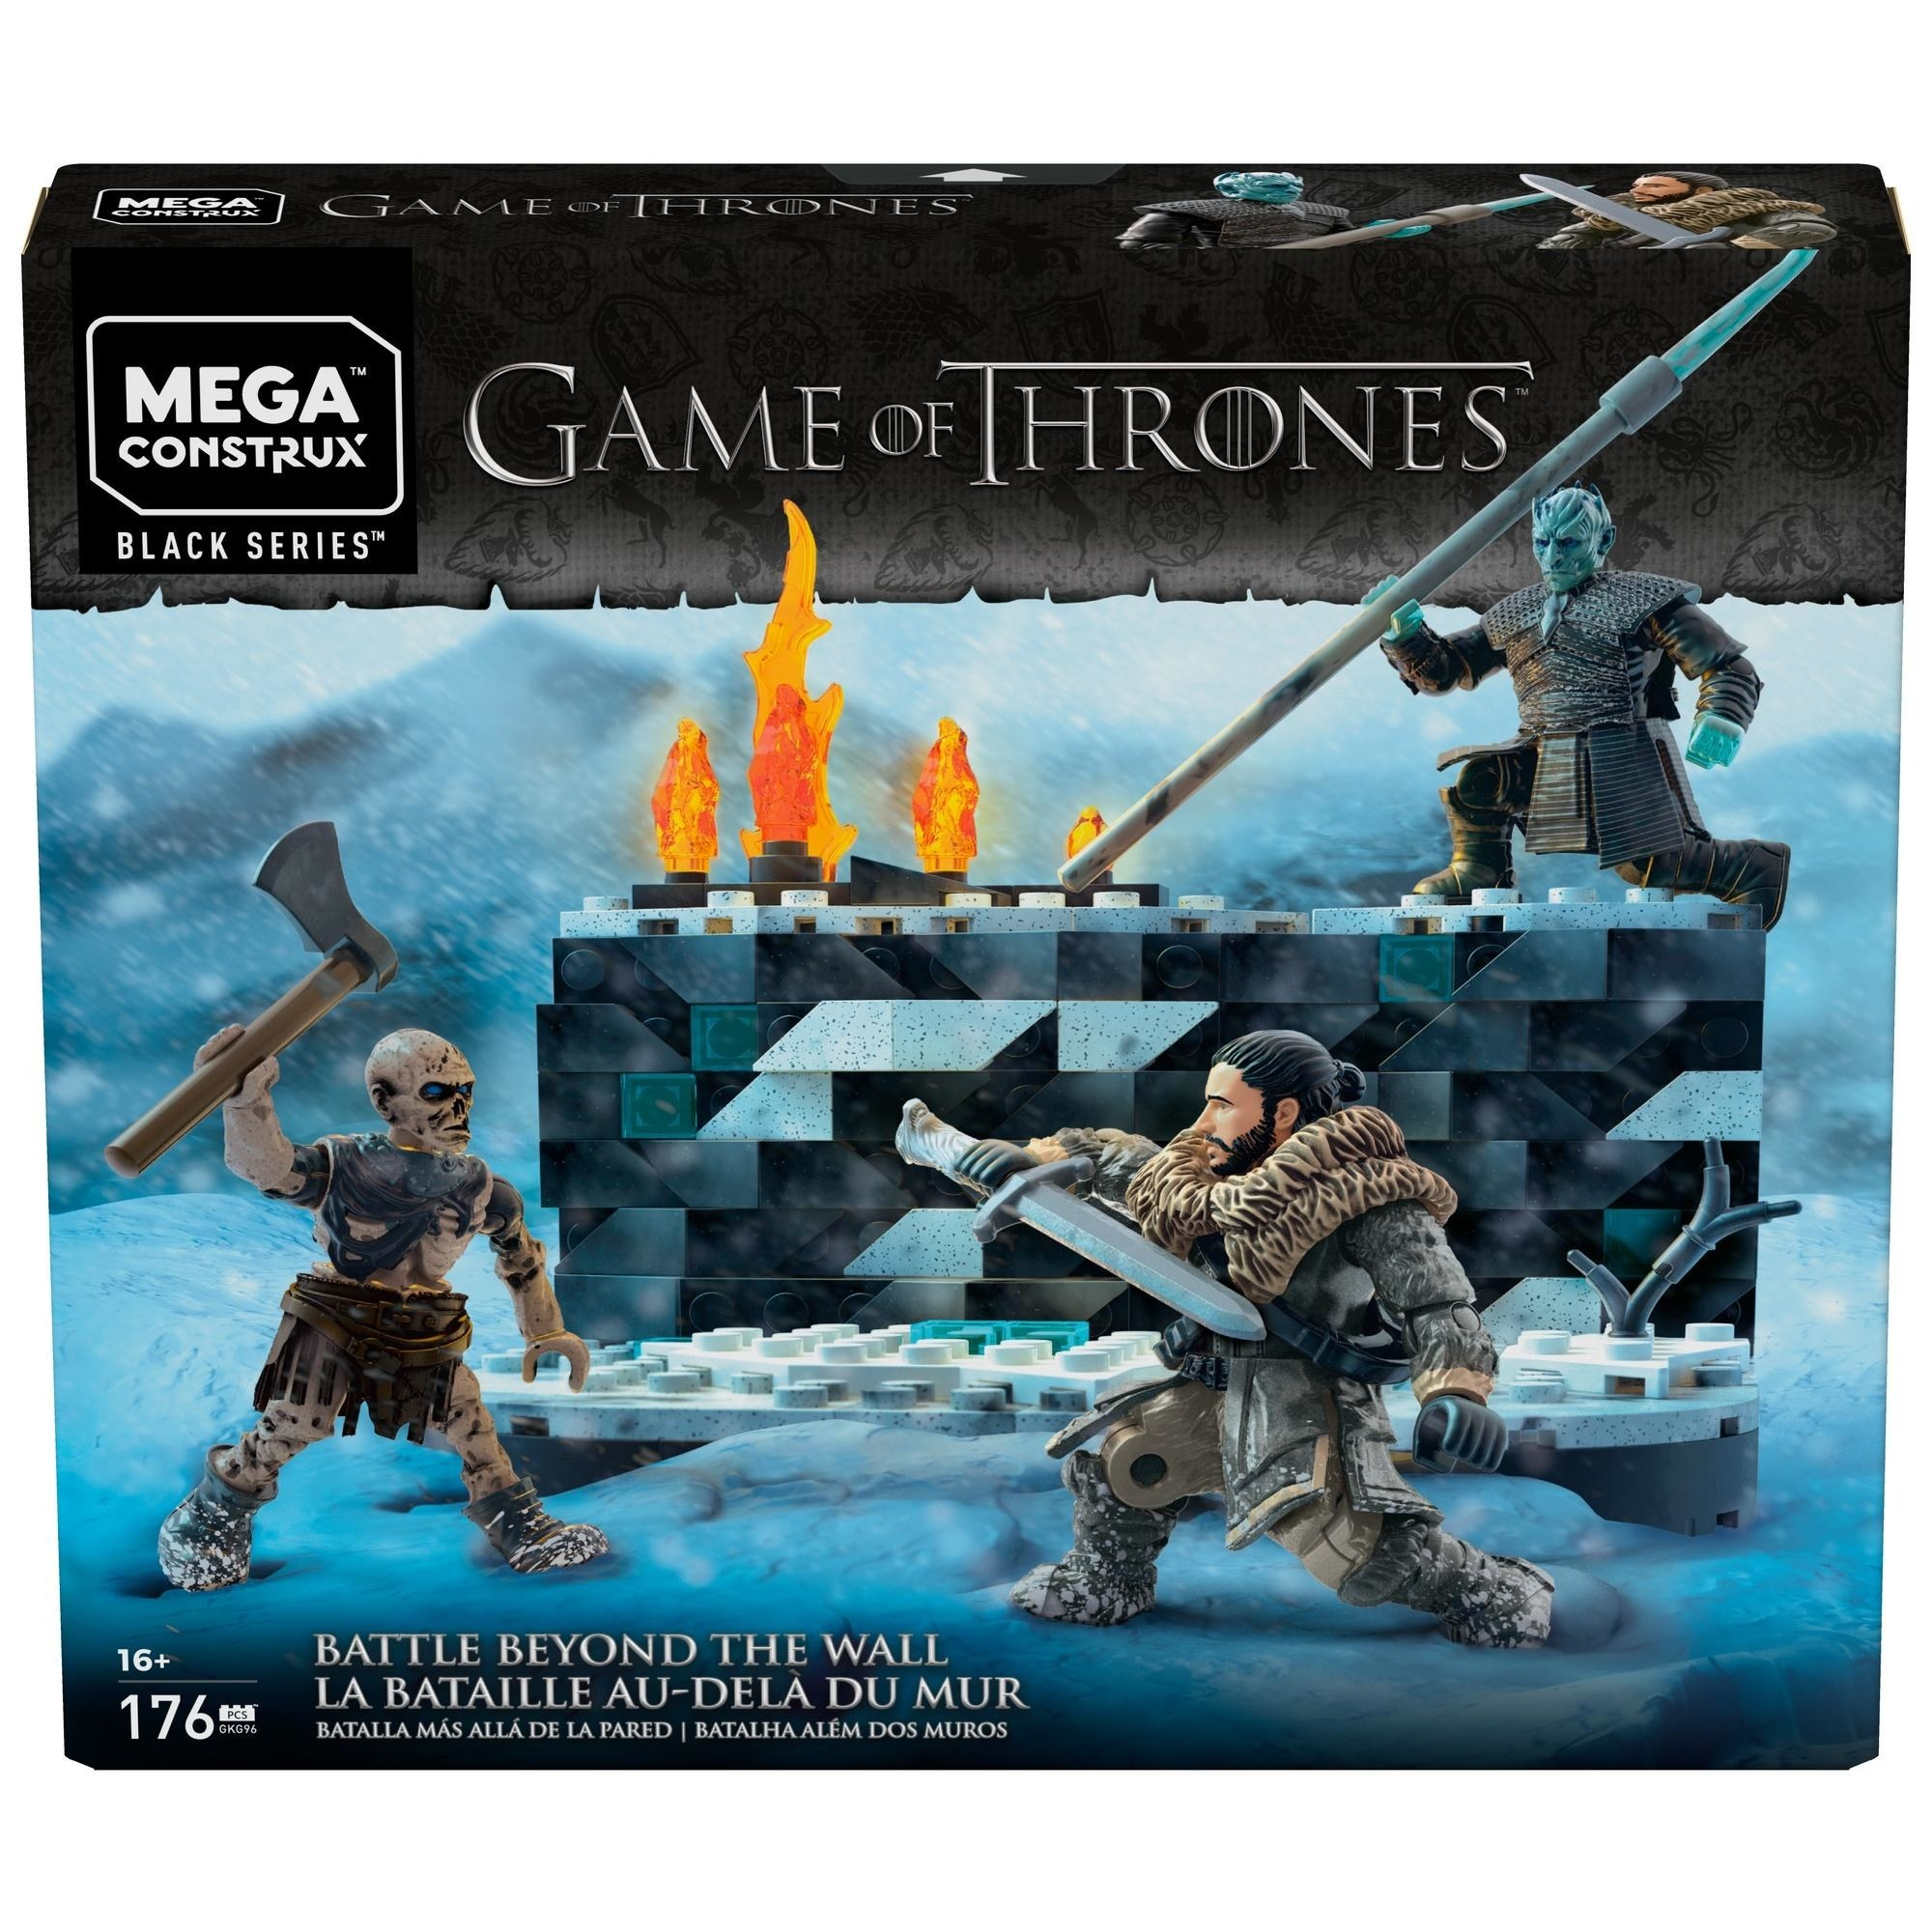 The set, which includes a wall and figures of Jon Snow, The Night King, and an undead wight